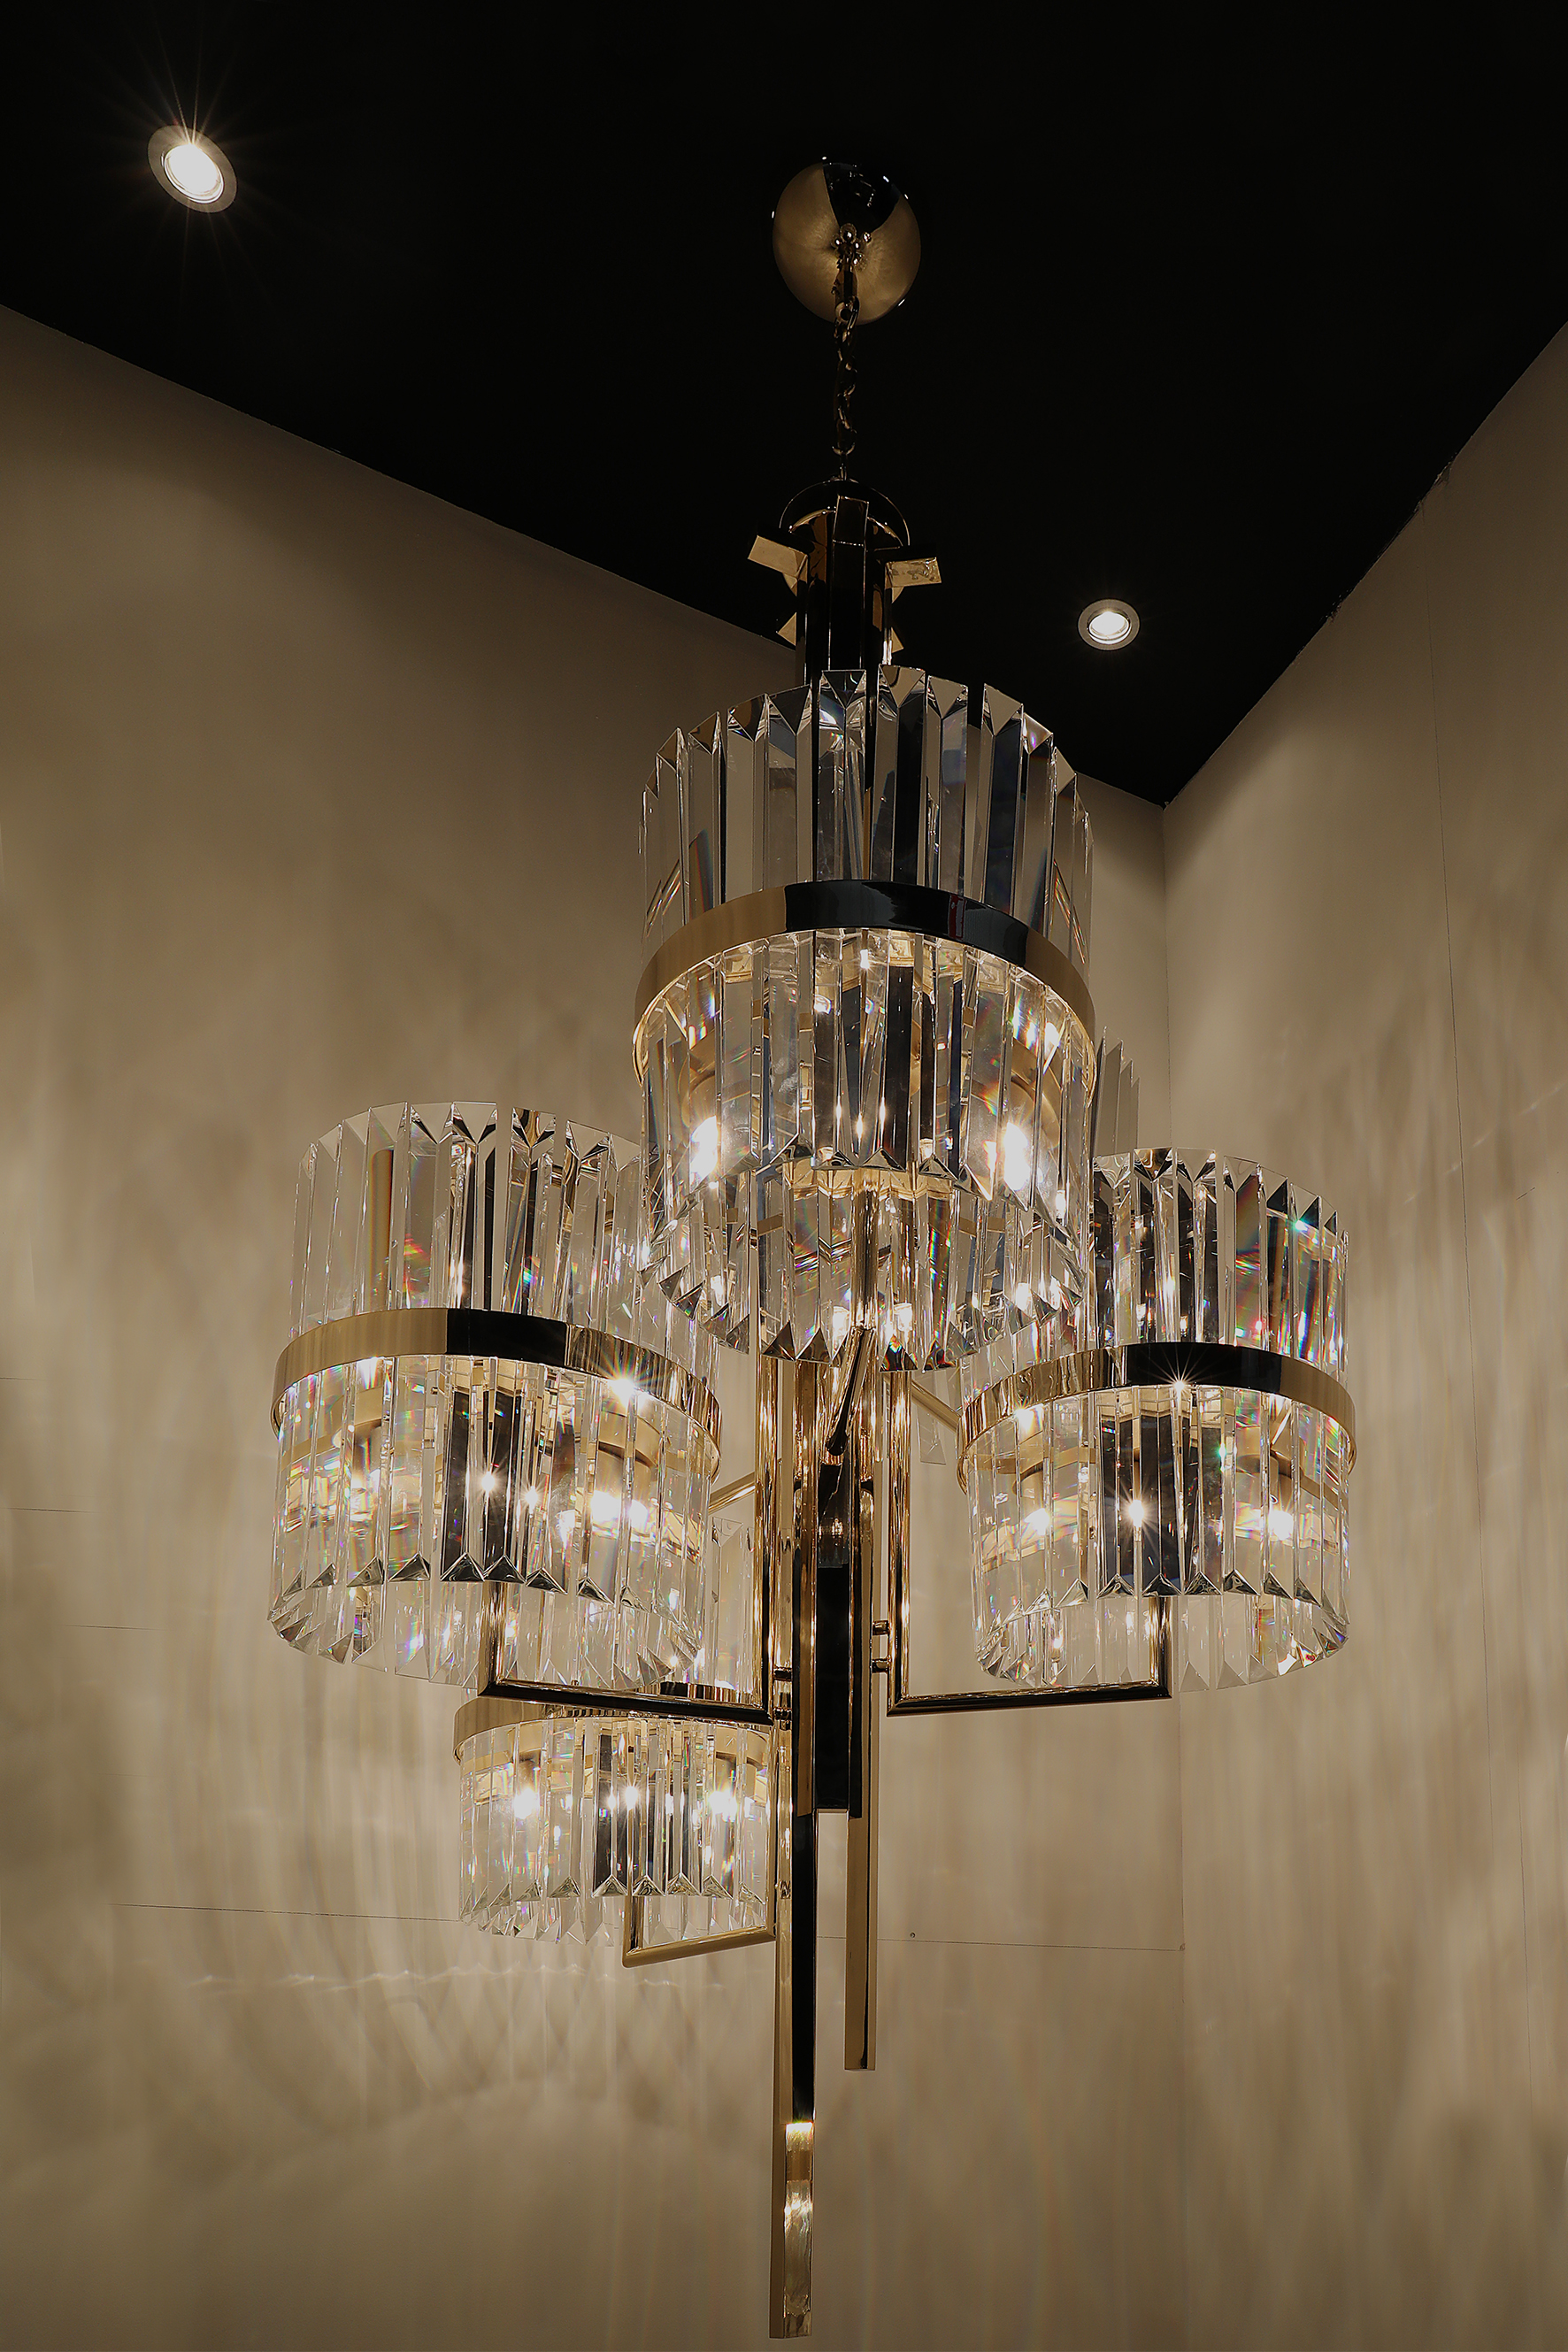 Extravagant Lighting Collection by Luxxu at Maison et Objet Paris 2017 maison et objet paris 2017 Extravagant Lighting Collection by Luxxu at Maison et Objet Paris 2017 liberty chandelier maison objet paris 2017